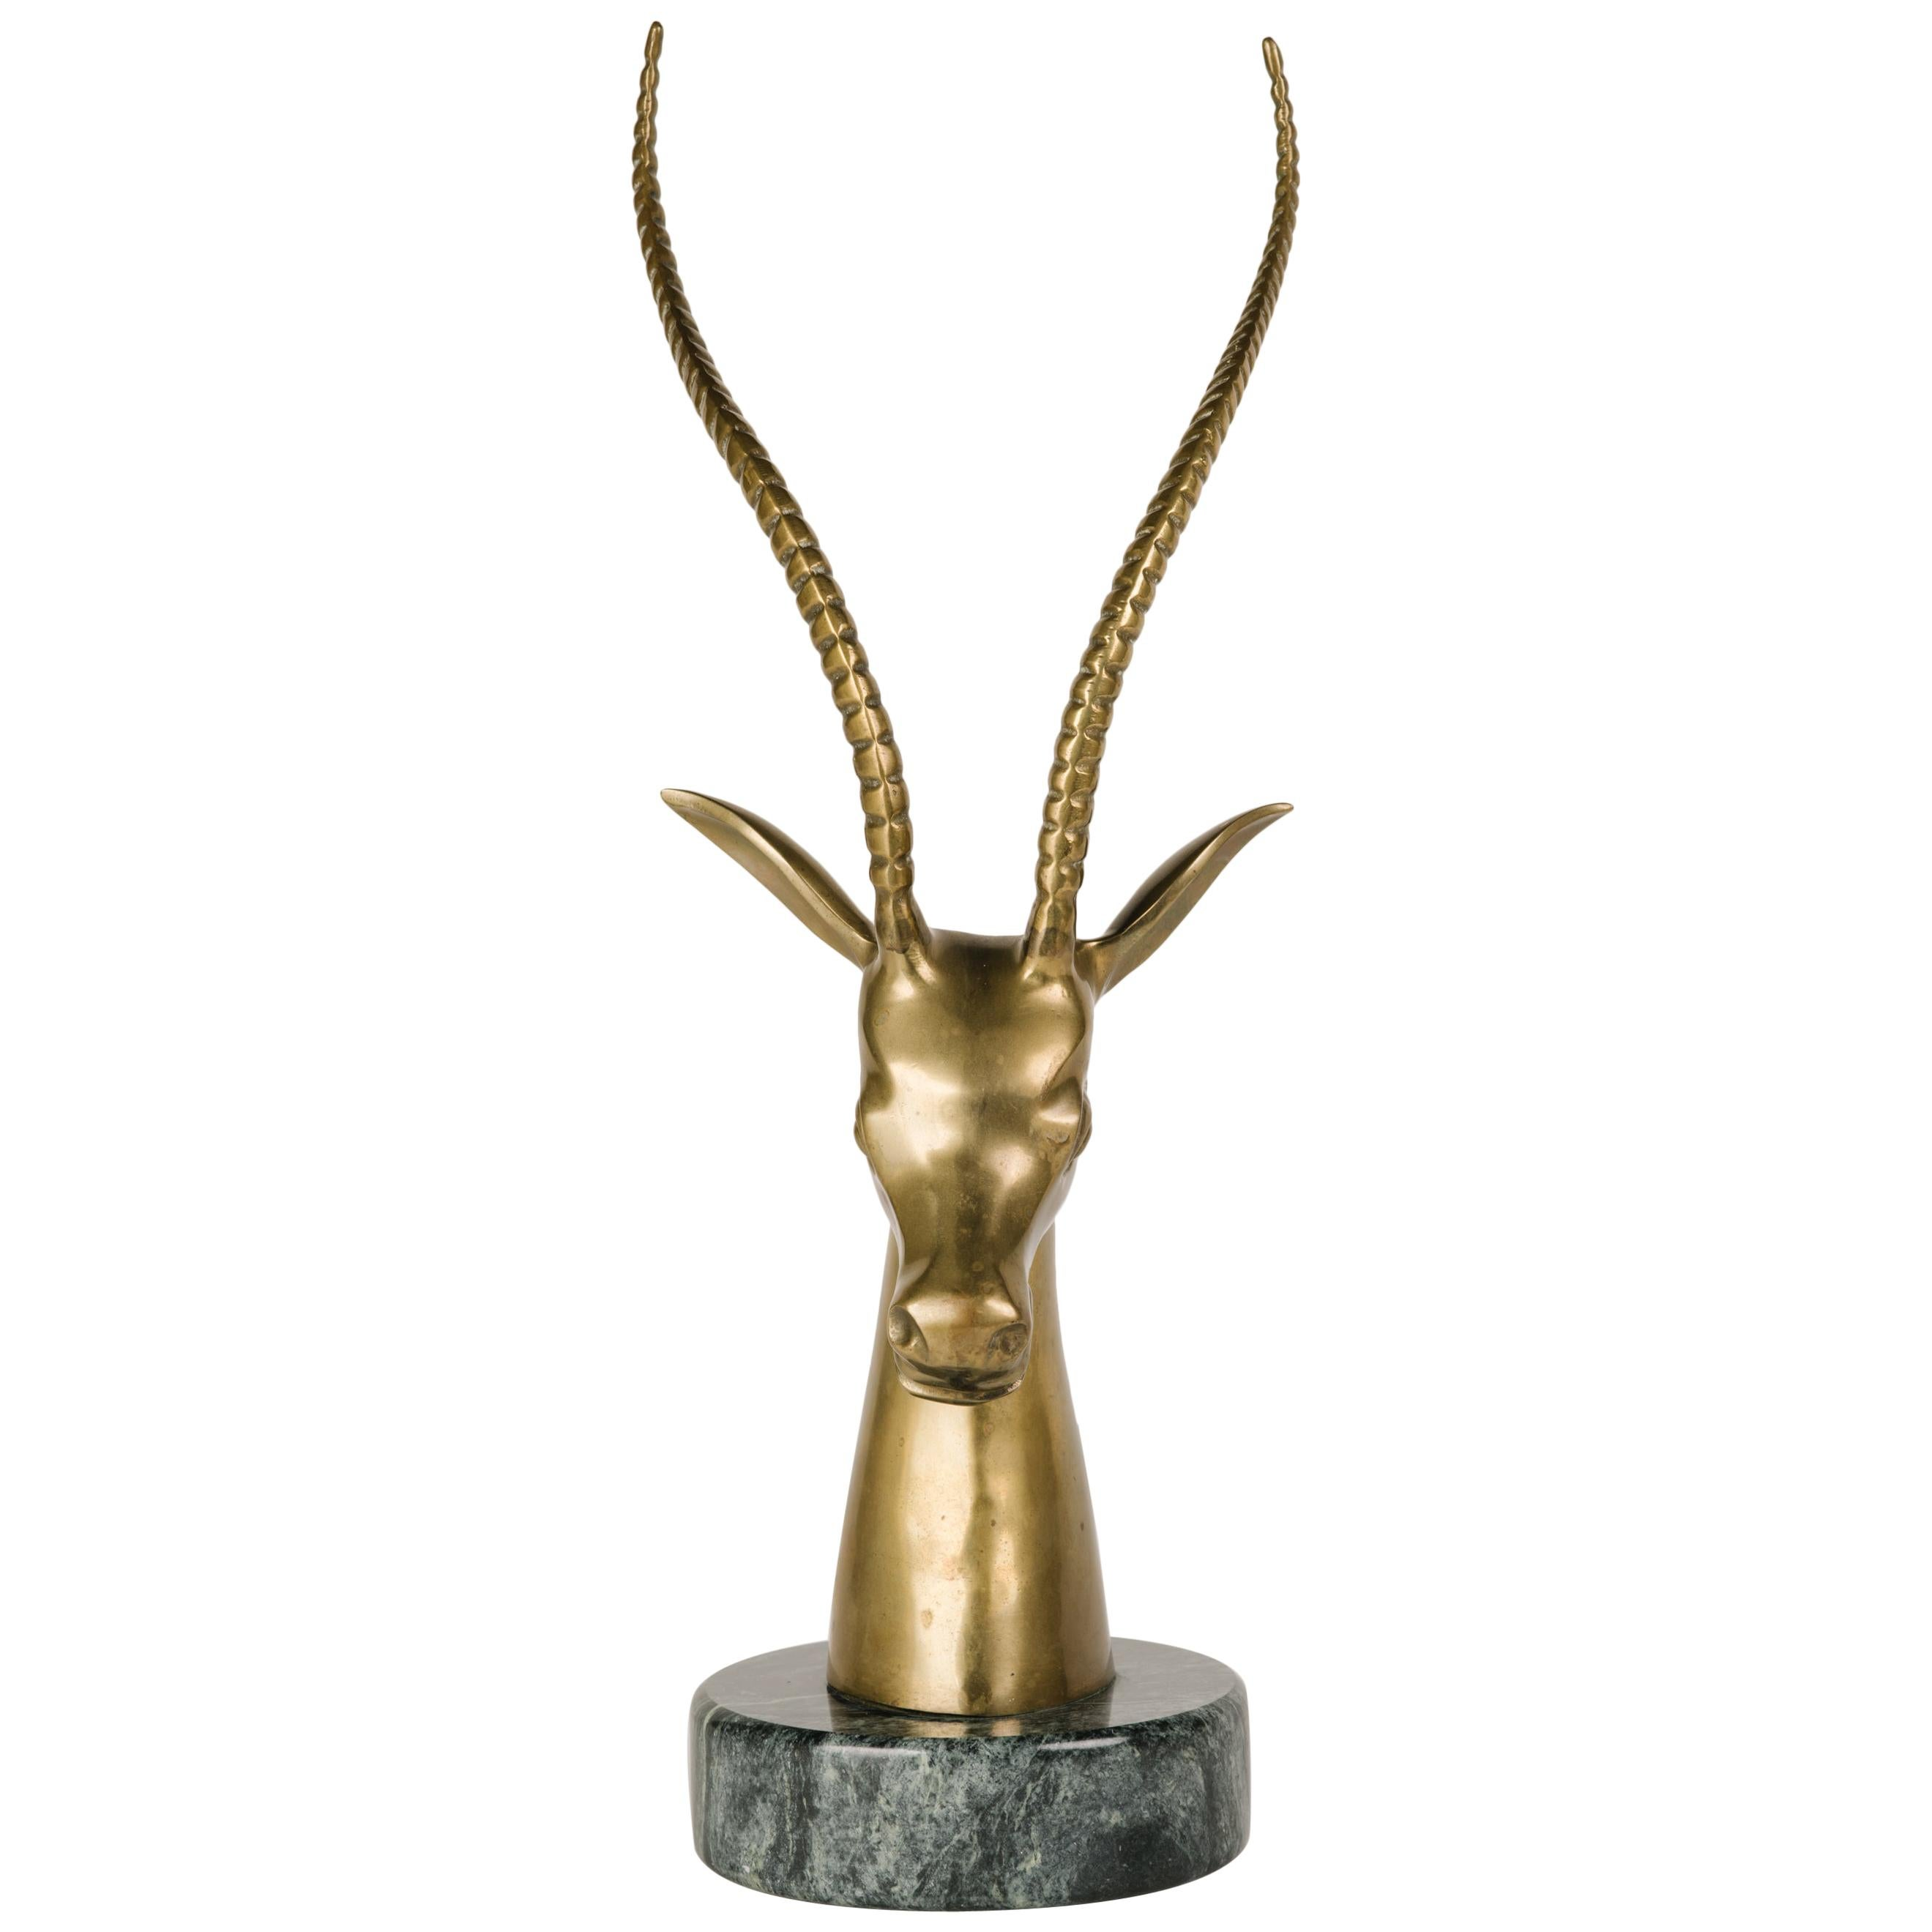 Hollywood Regency Brass Gazelle Sculpture with Exotic Marble Base, c. 1970's